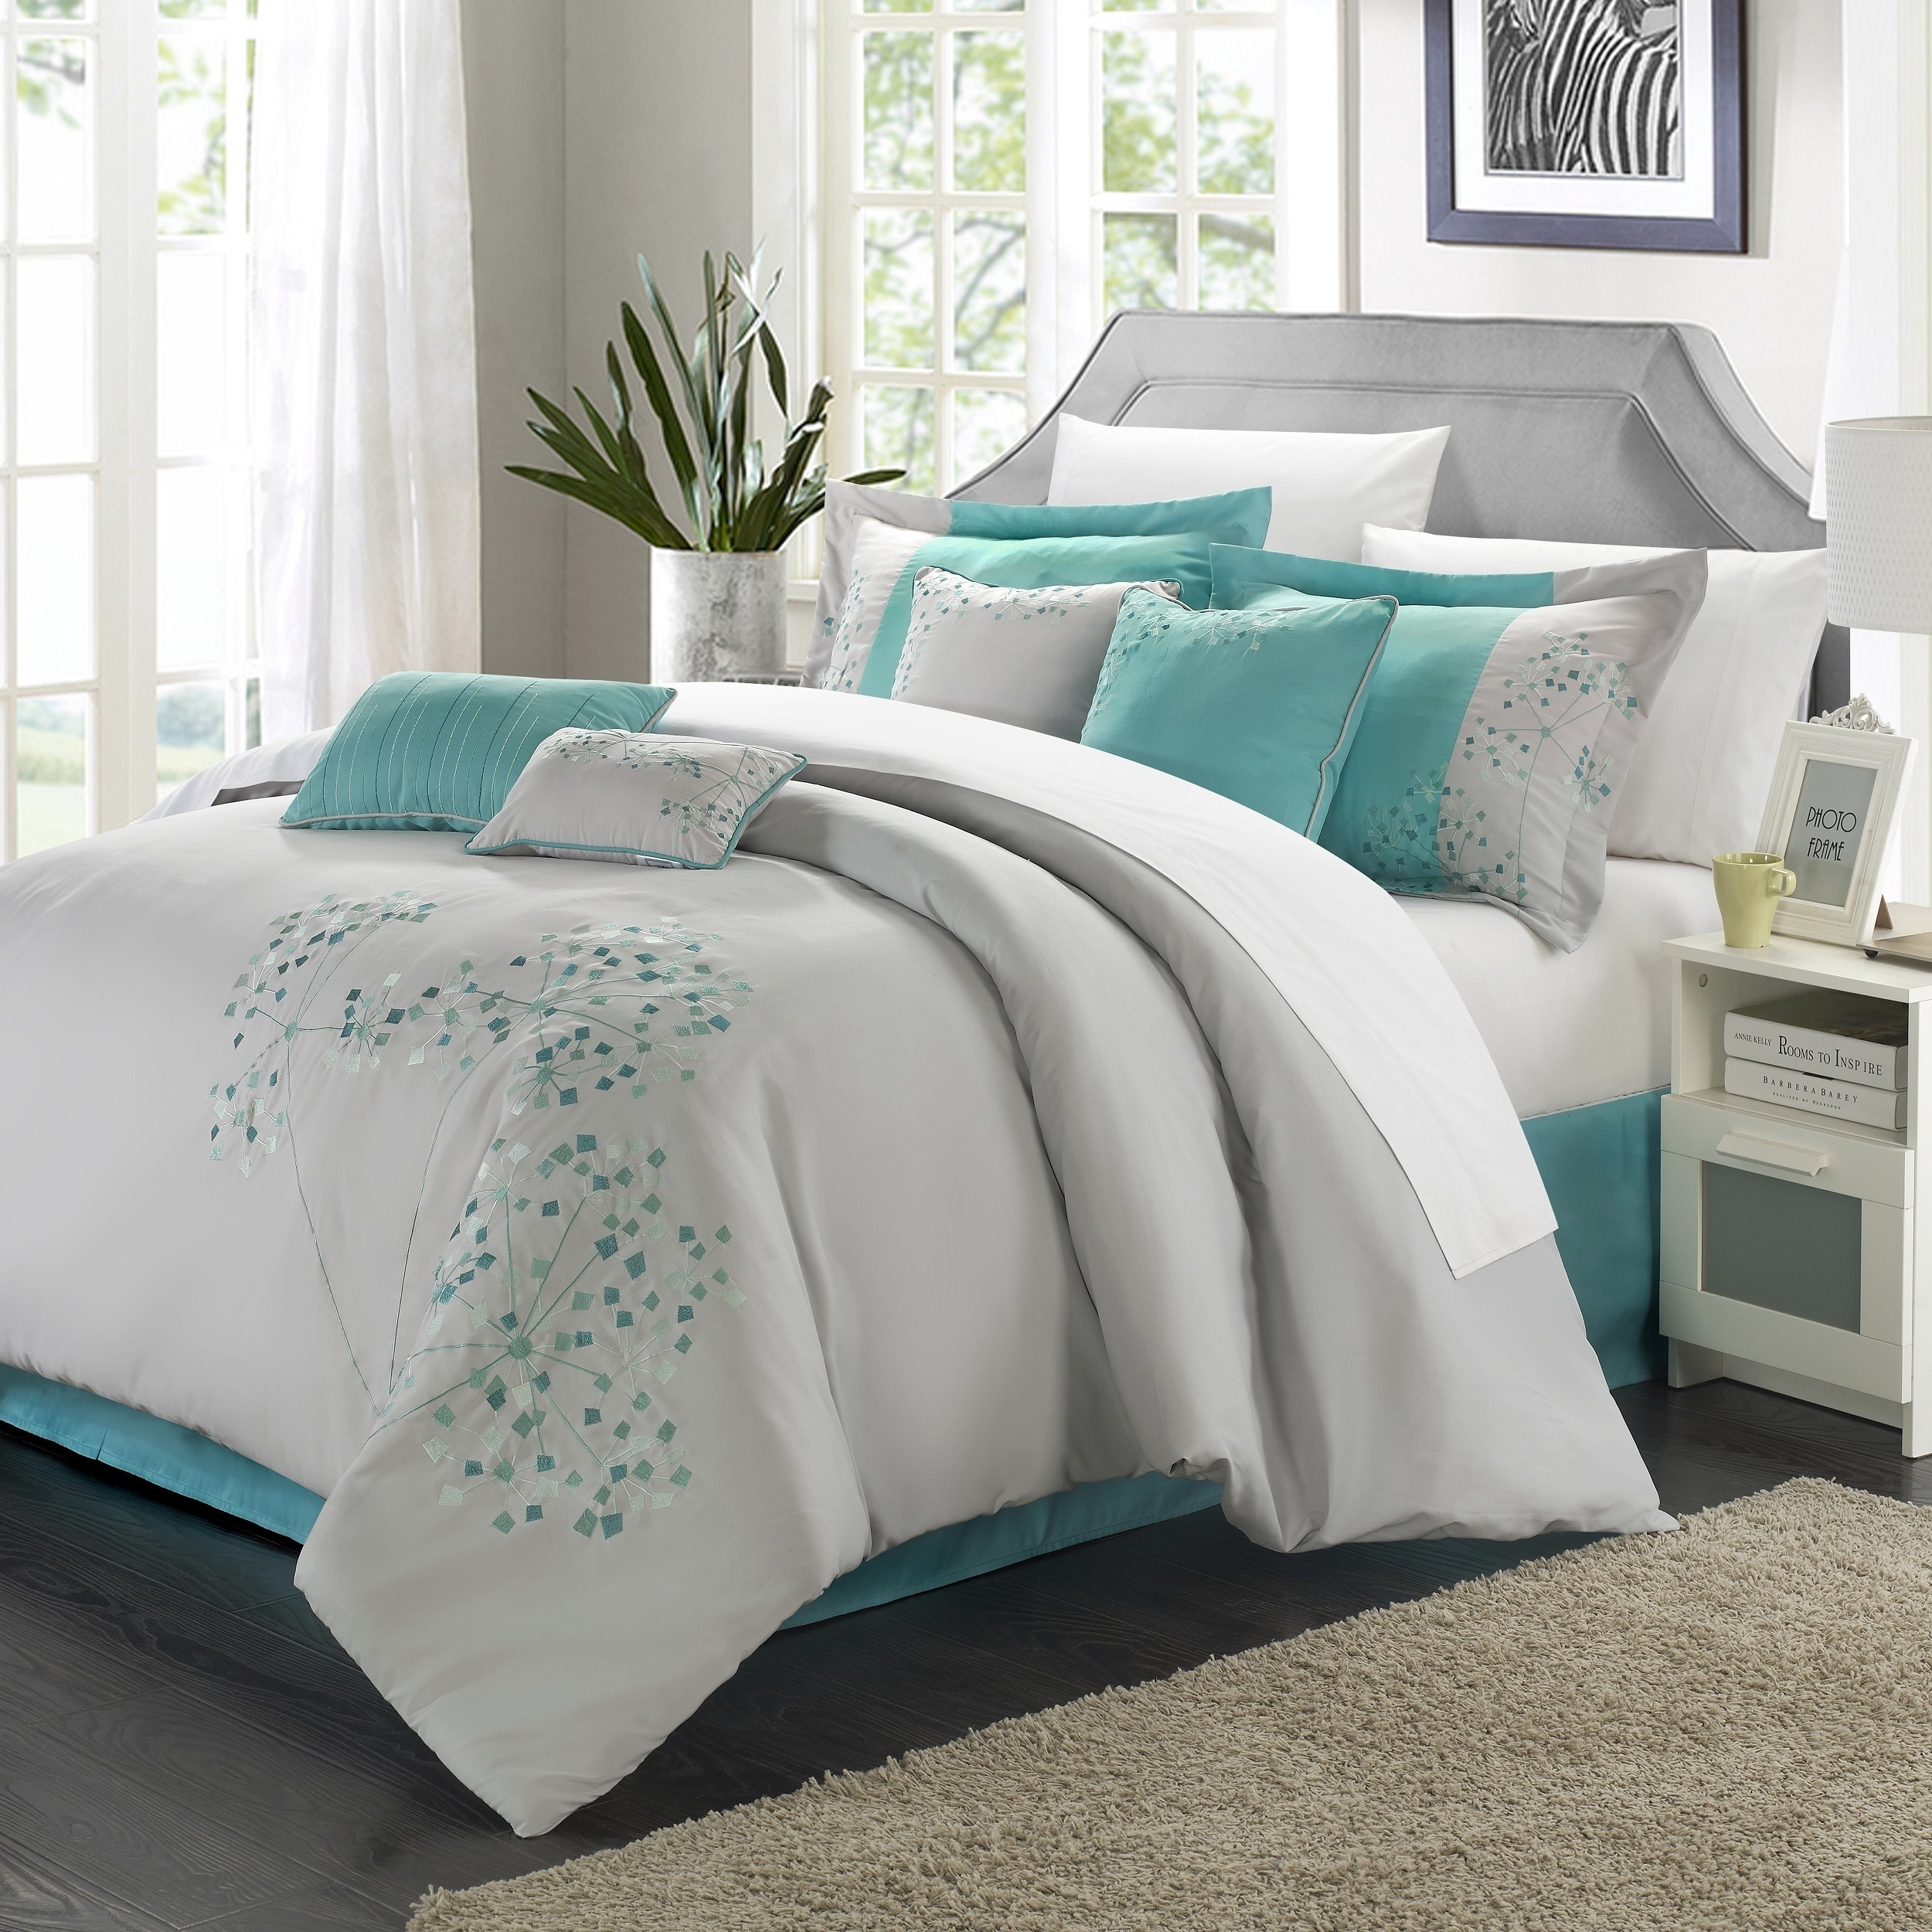 Shop Chic Home Shea 12 Piece Grey And Turquoise Embroidered Floral